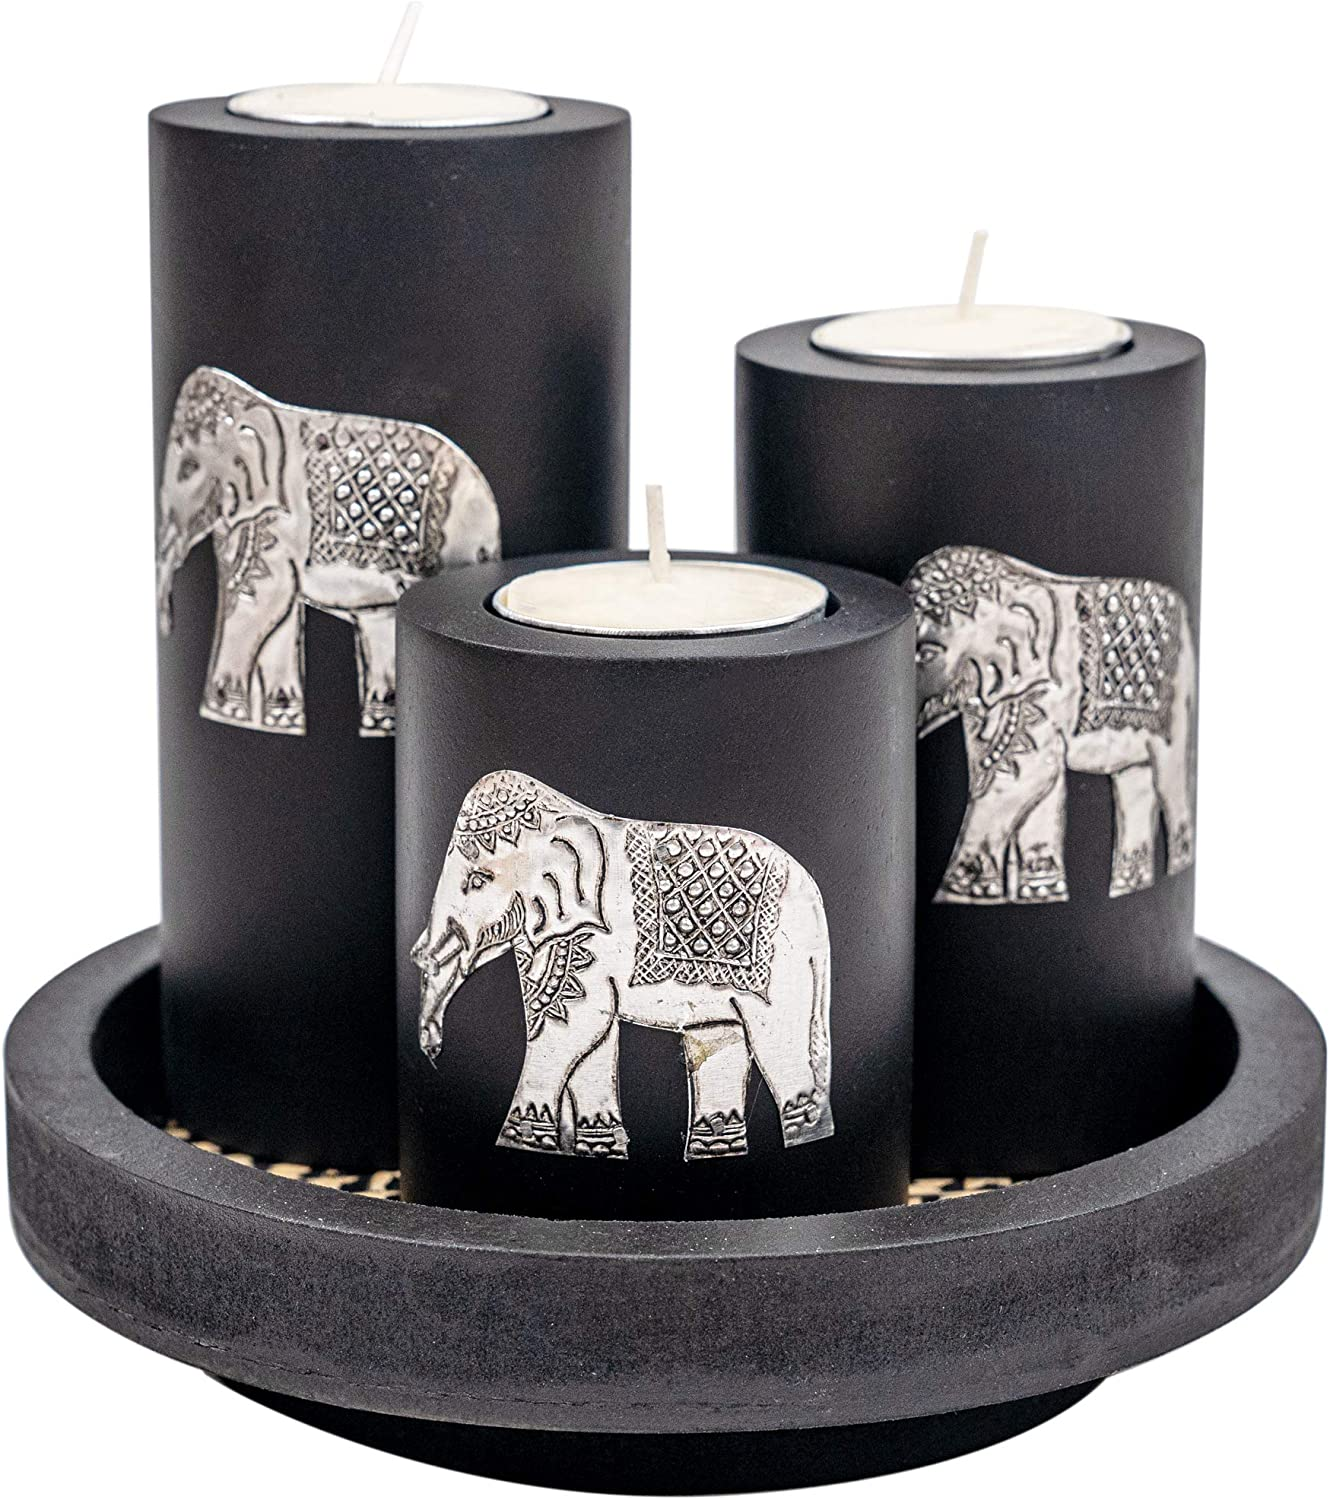 IYARA CRAFT 3 Wooden Candle Holders with Candle Tray – Decorative Candle Holders with Inlaid Aluminium Antique Elephant – Intricate Details – Matte Wood Finish – Ideal for Modern & Rustic Settings